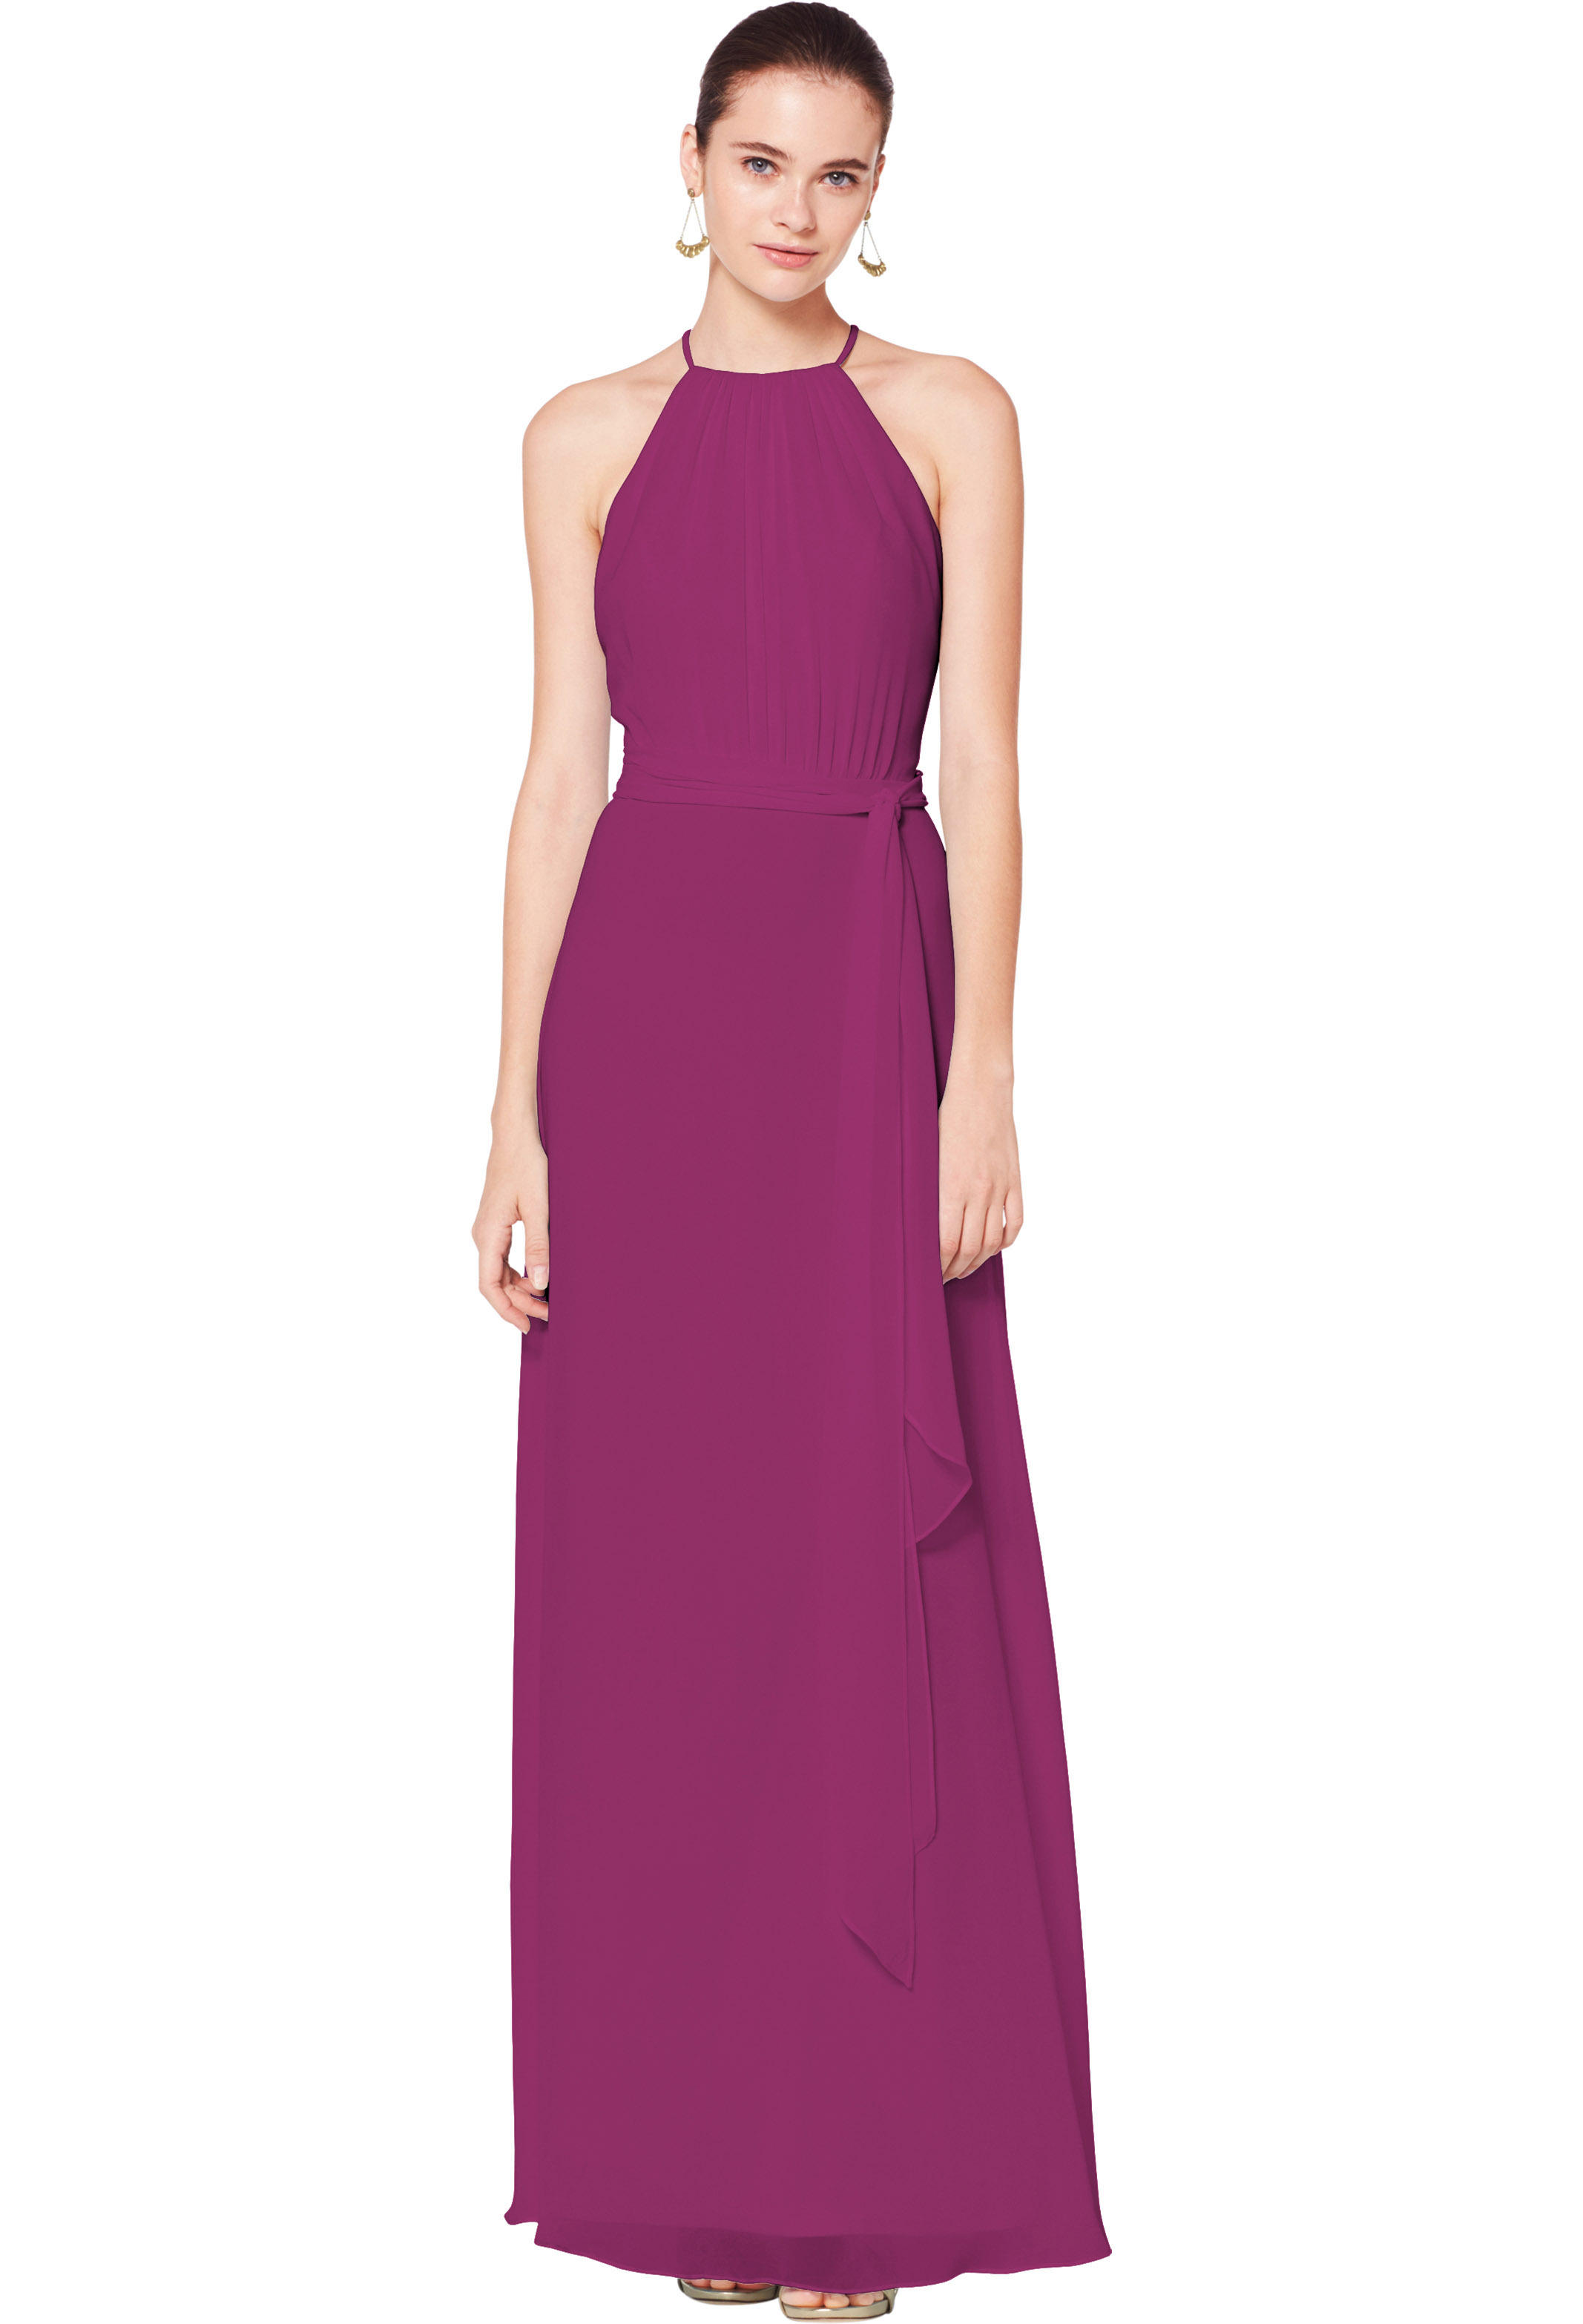 Bill Levkoff SANGRIA Chiffon Illusion A-line gown, $180.00 Front